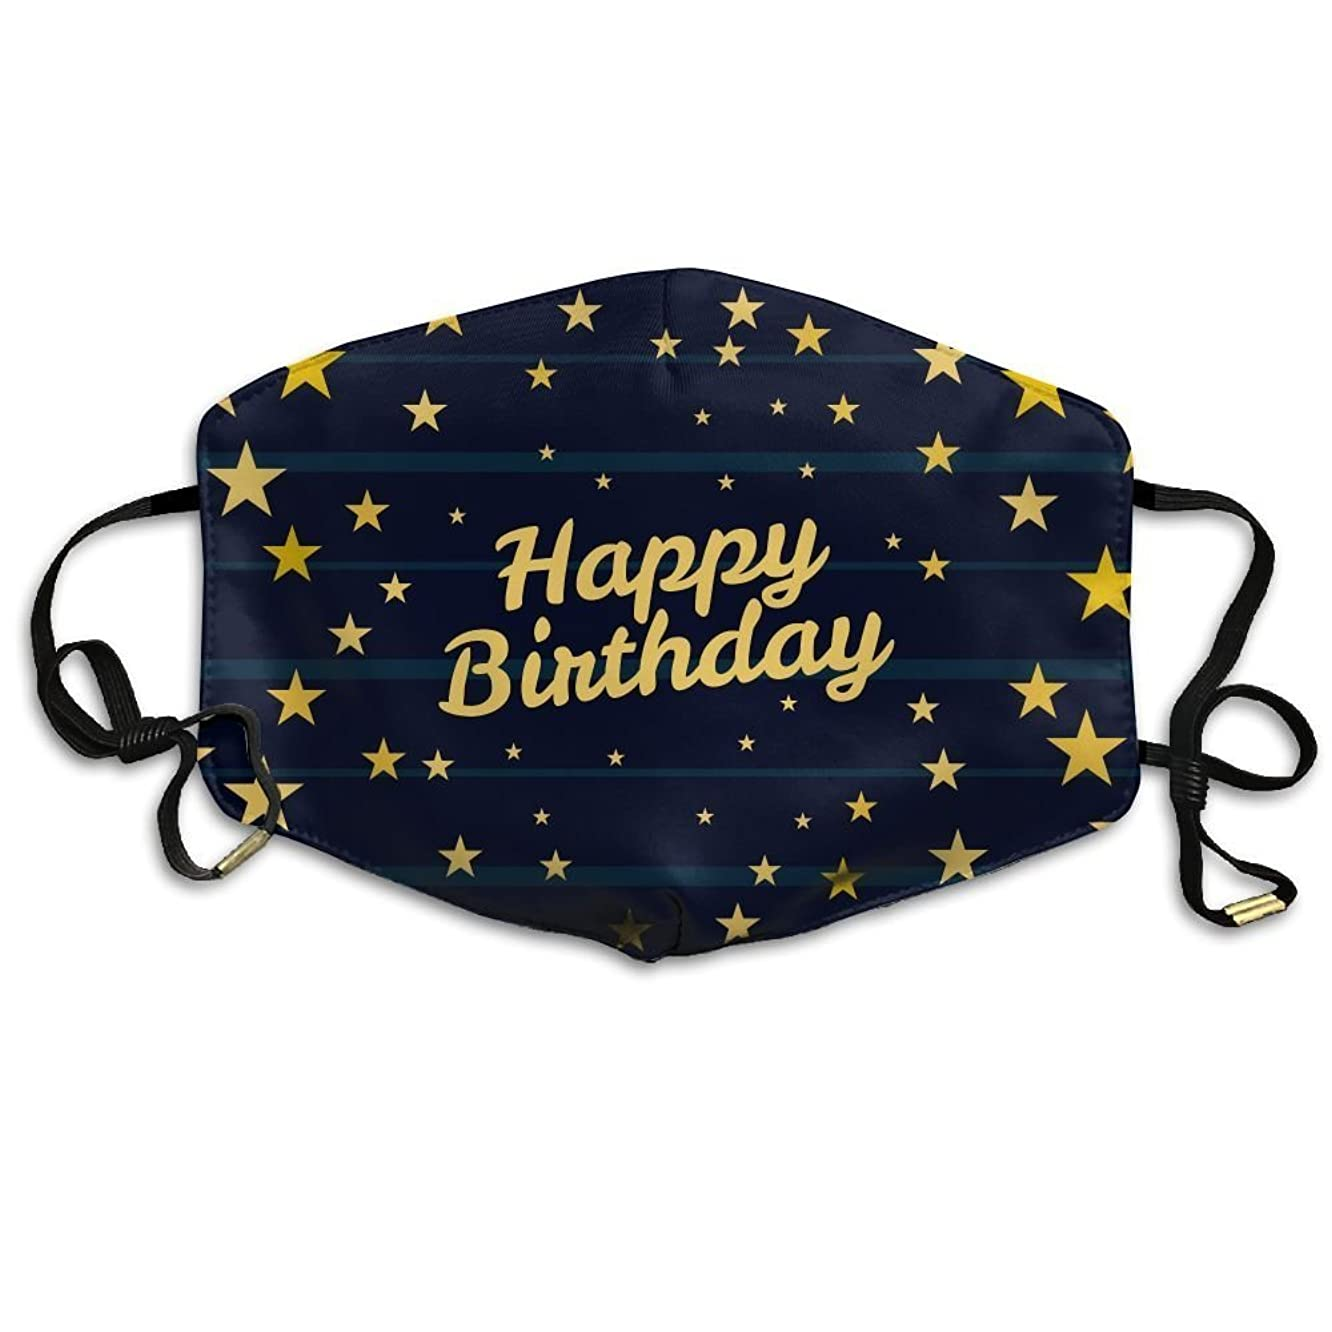 Happy Birthday Face Mask Best Comfortable,Reusable - Filters Dust,Pollen,Allergens, Flu Germs Dust Mask